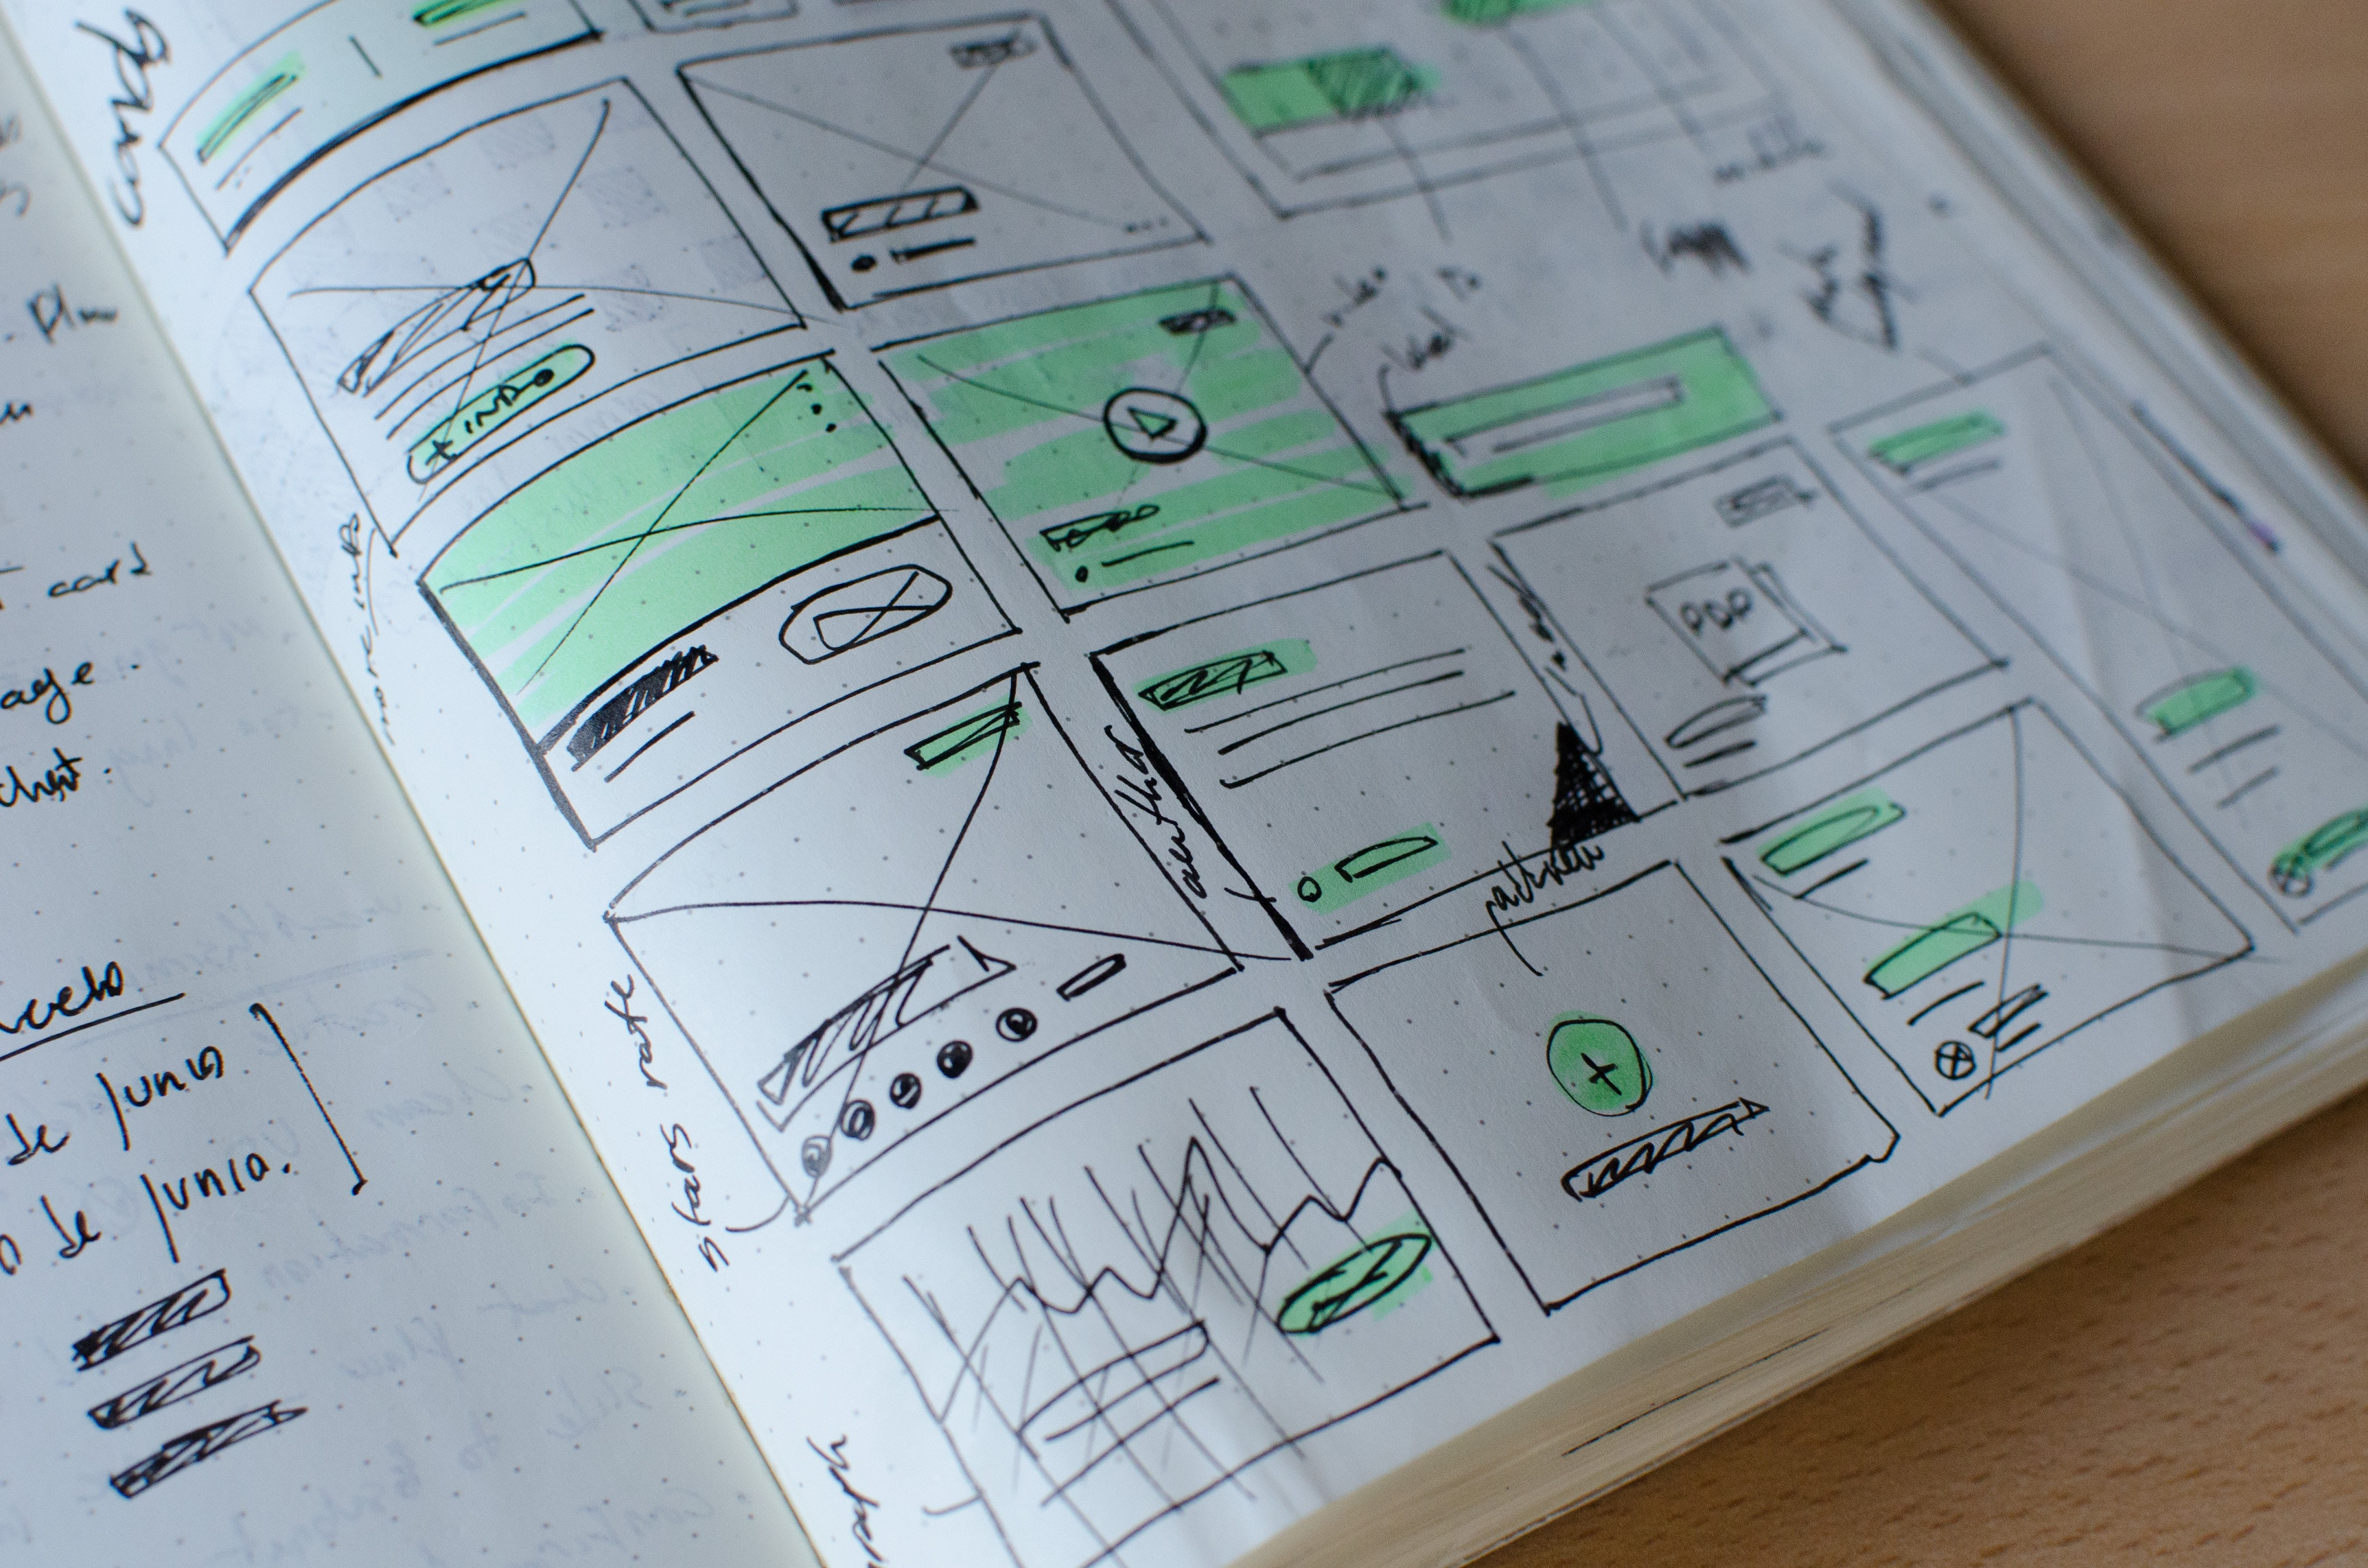 14 Must-Know Tips for Getting Started in UX